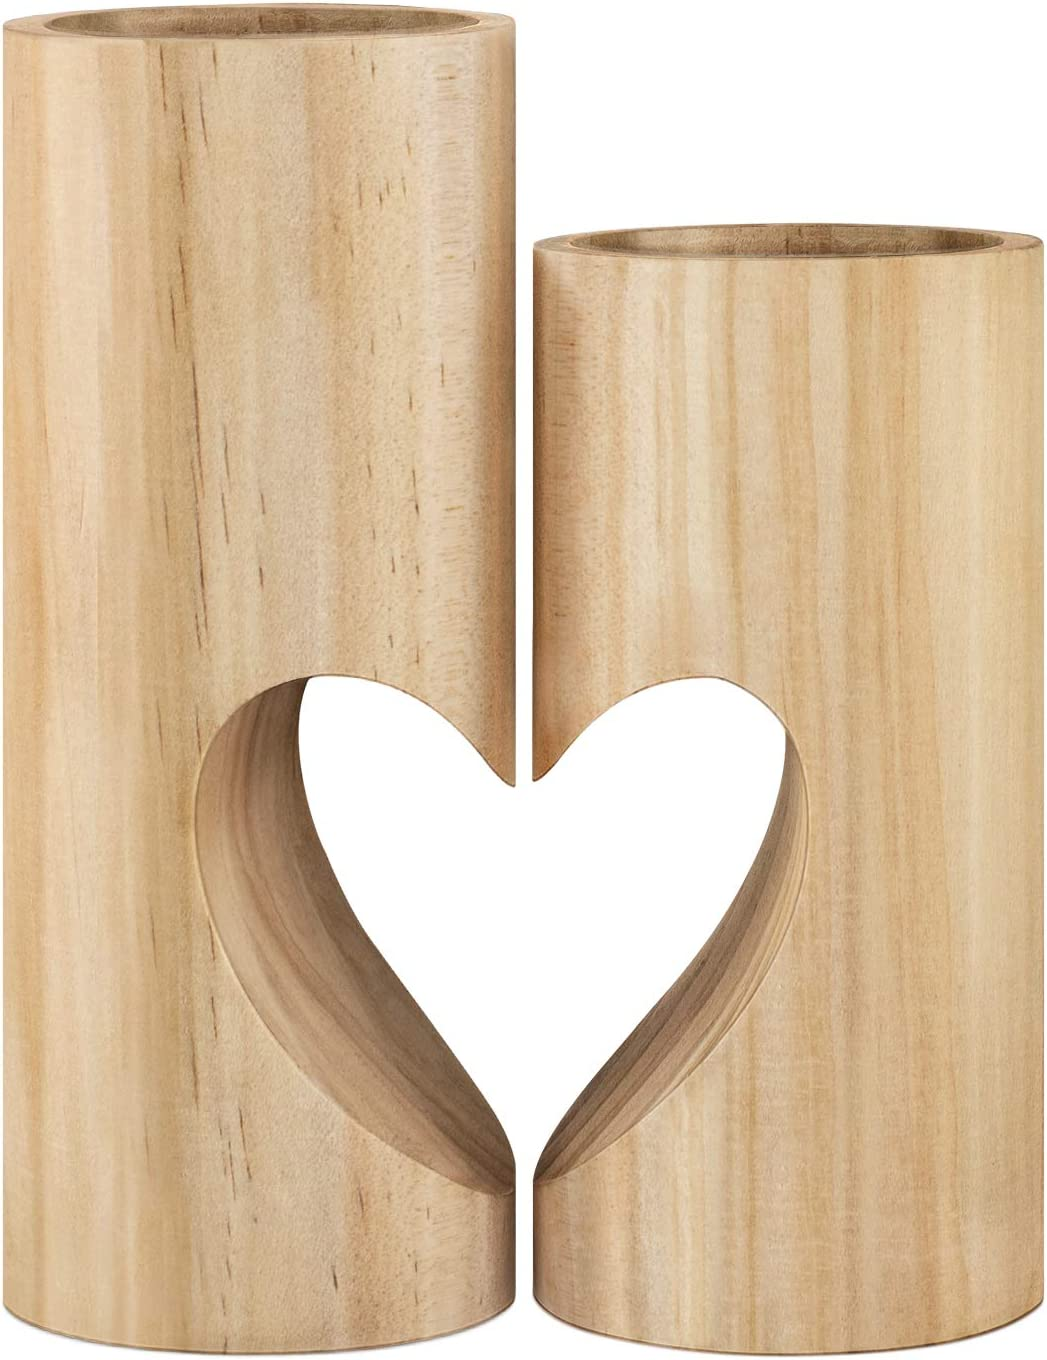 Easy-to-use Yolife Wood Tealight Candle Holder Set Unity Heart of 2 Limited price sale Pedesta